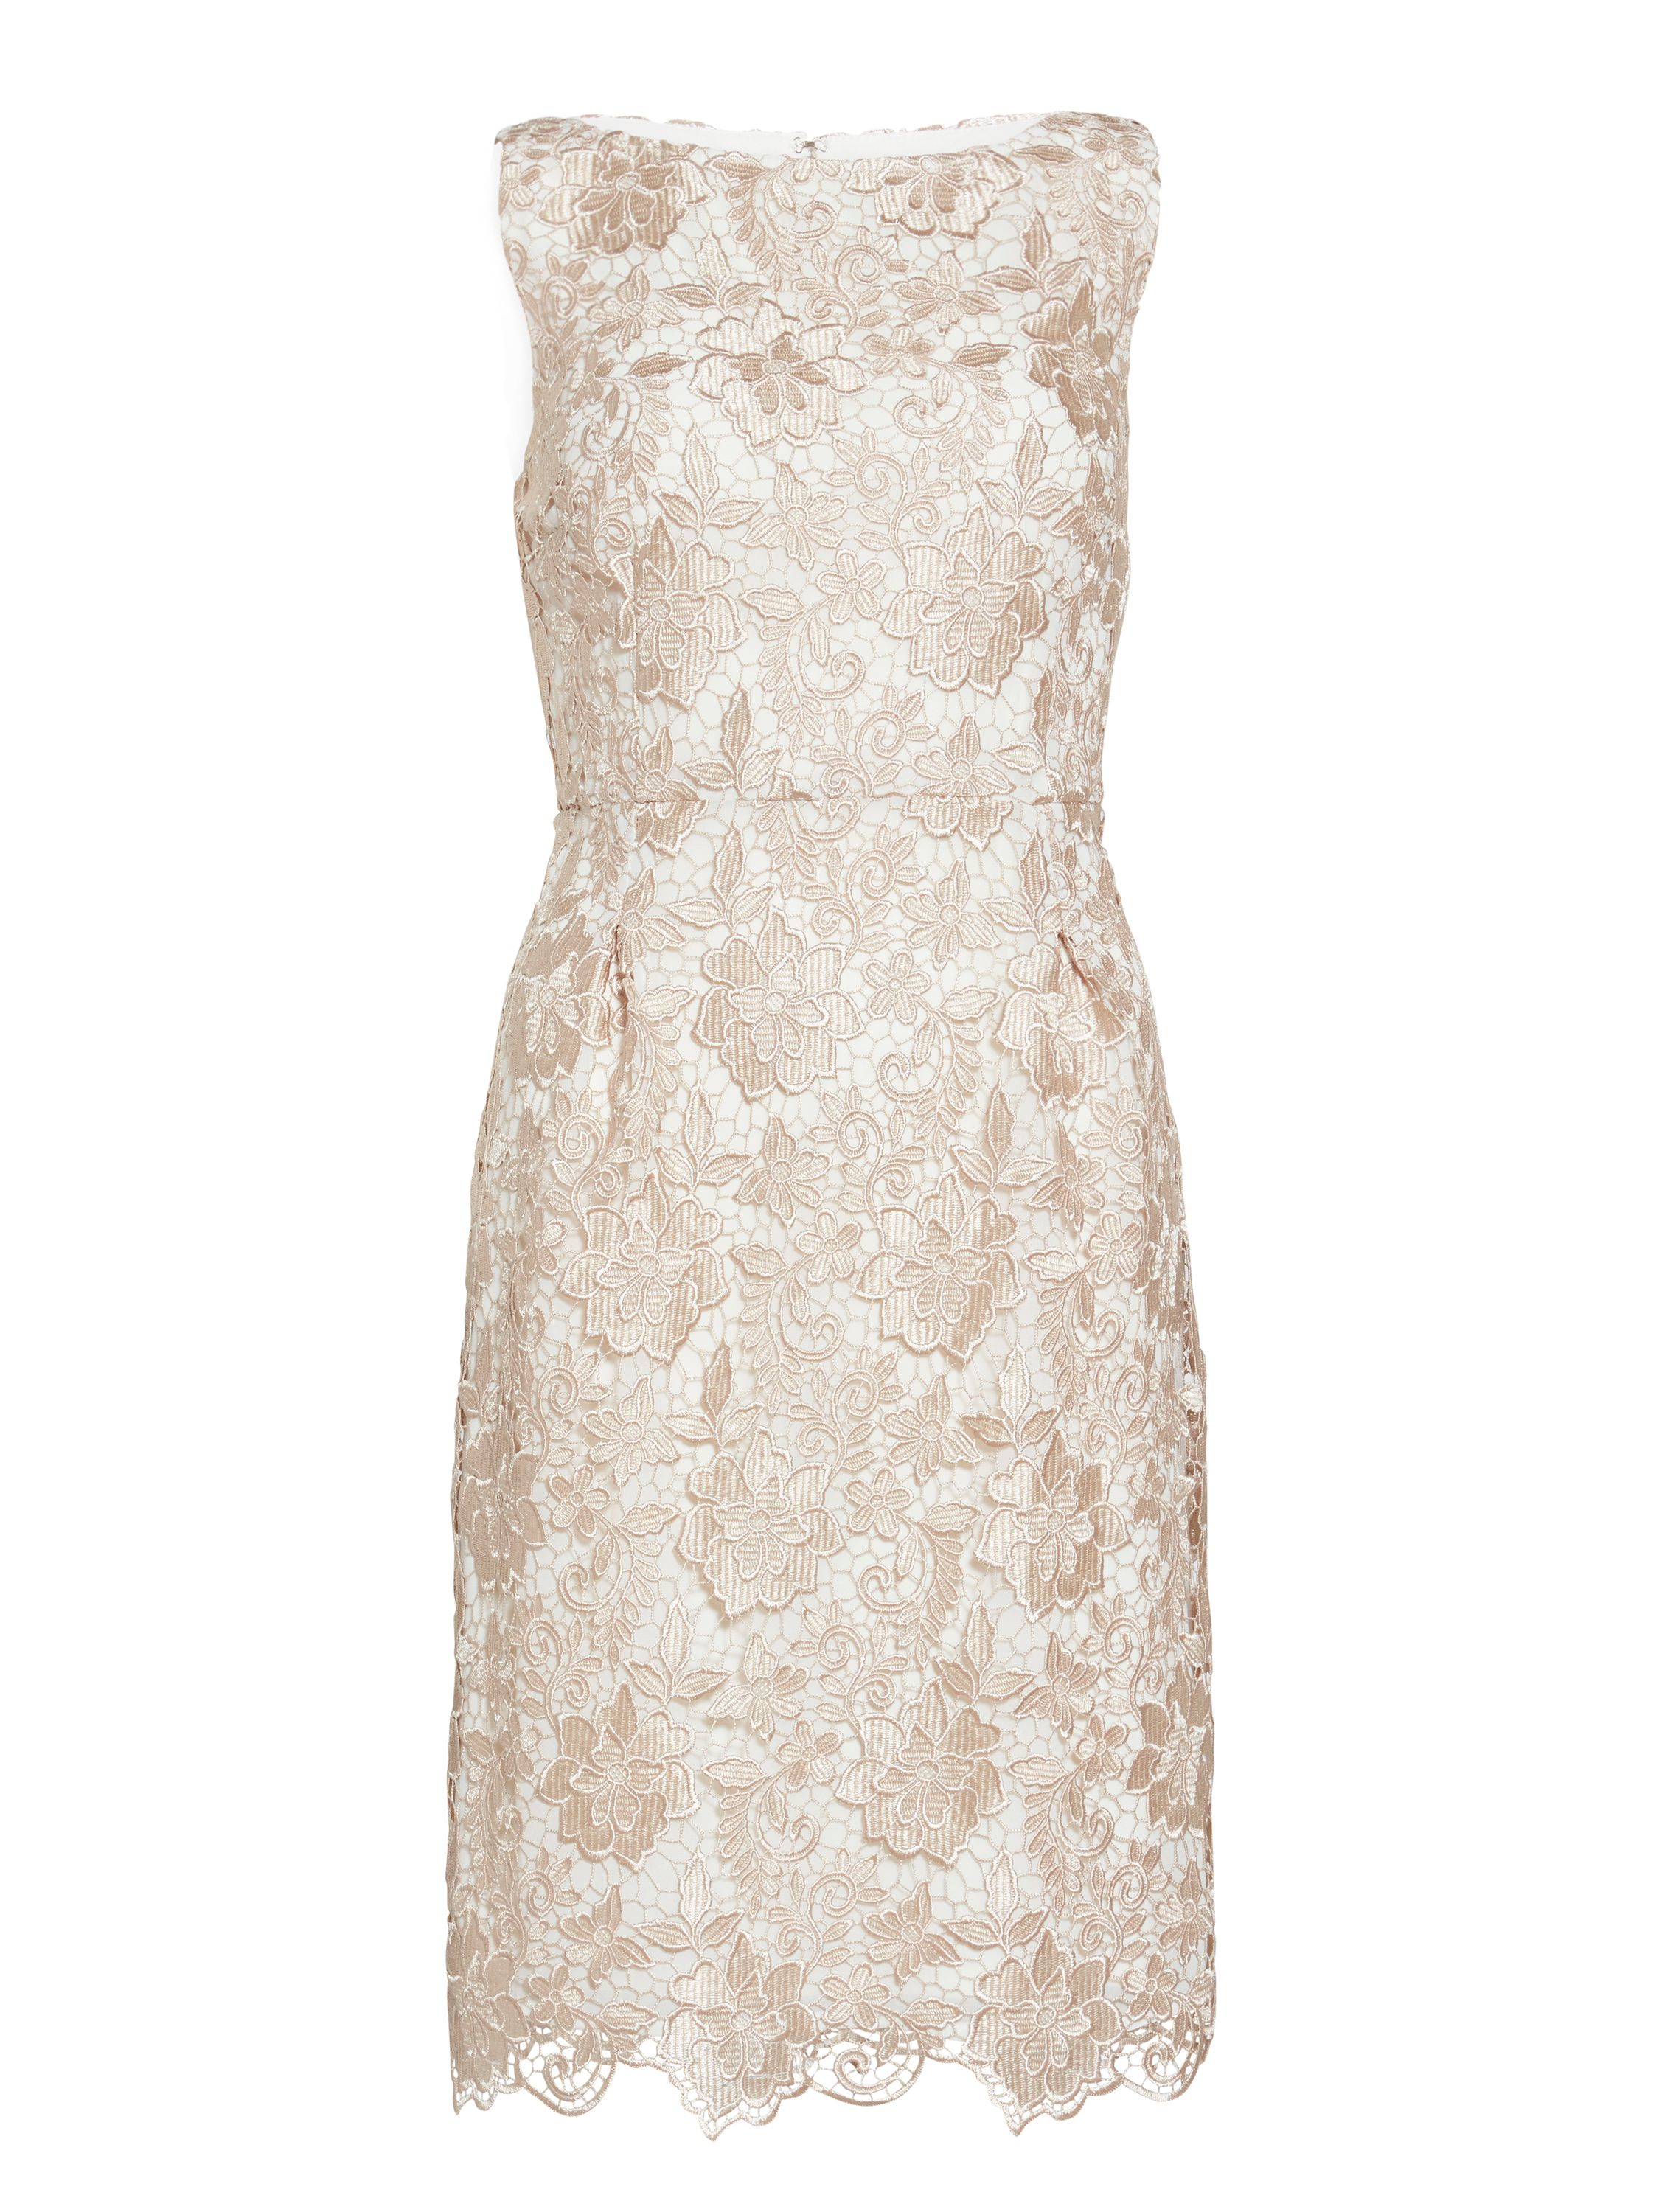 Gina Bacconi Almond guipure lace dress, White